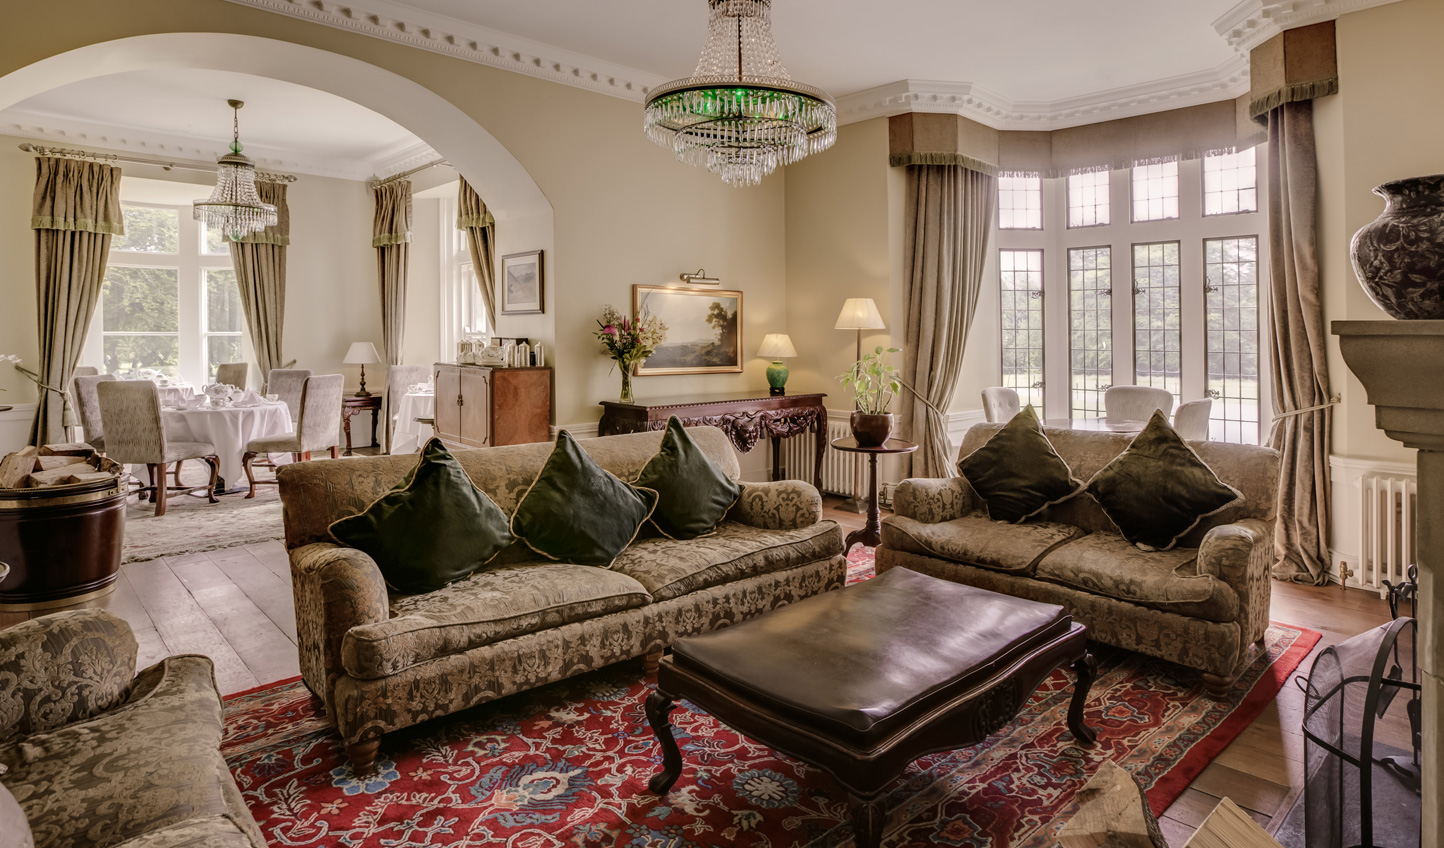 Curl up in the Emerald Drawing Room with a good book or fine Irish whiskey